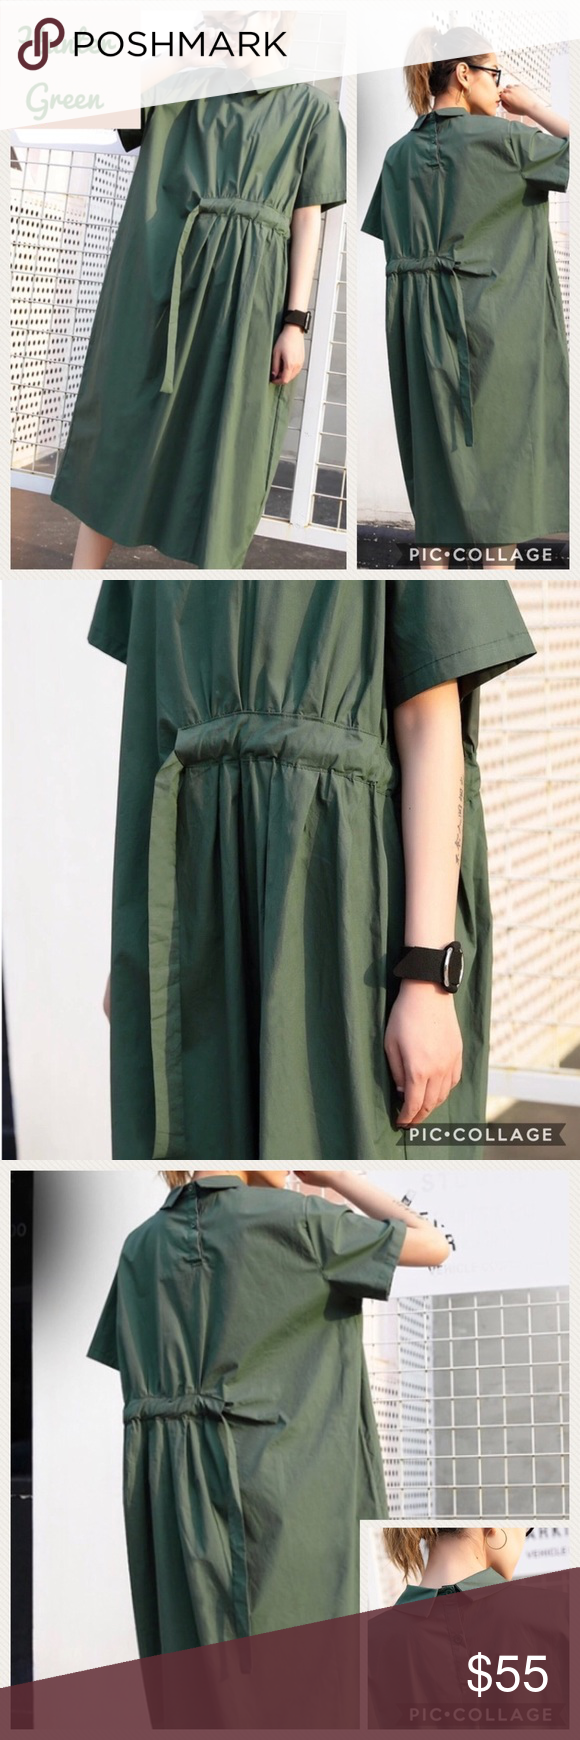 Unique hunter green shirt dress boutique in my posh closet